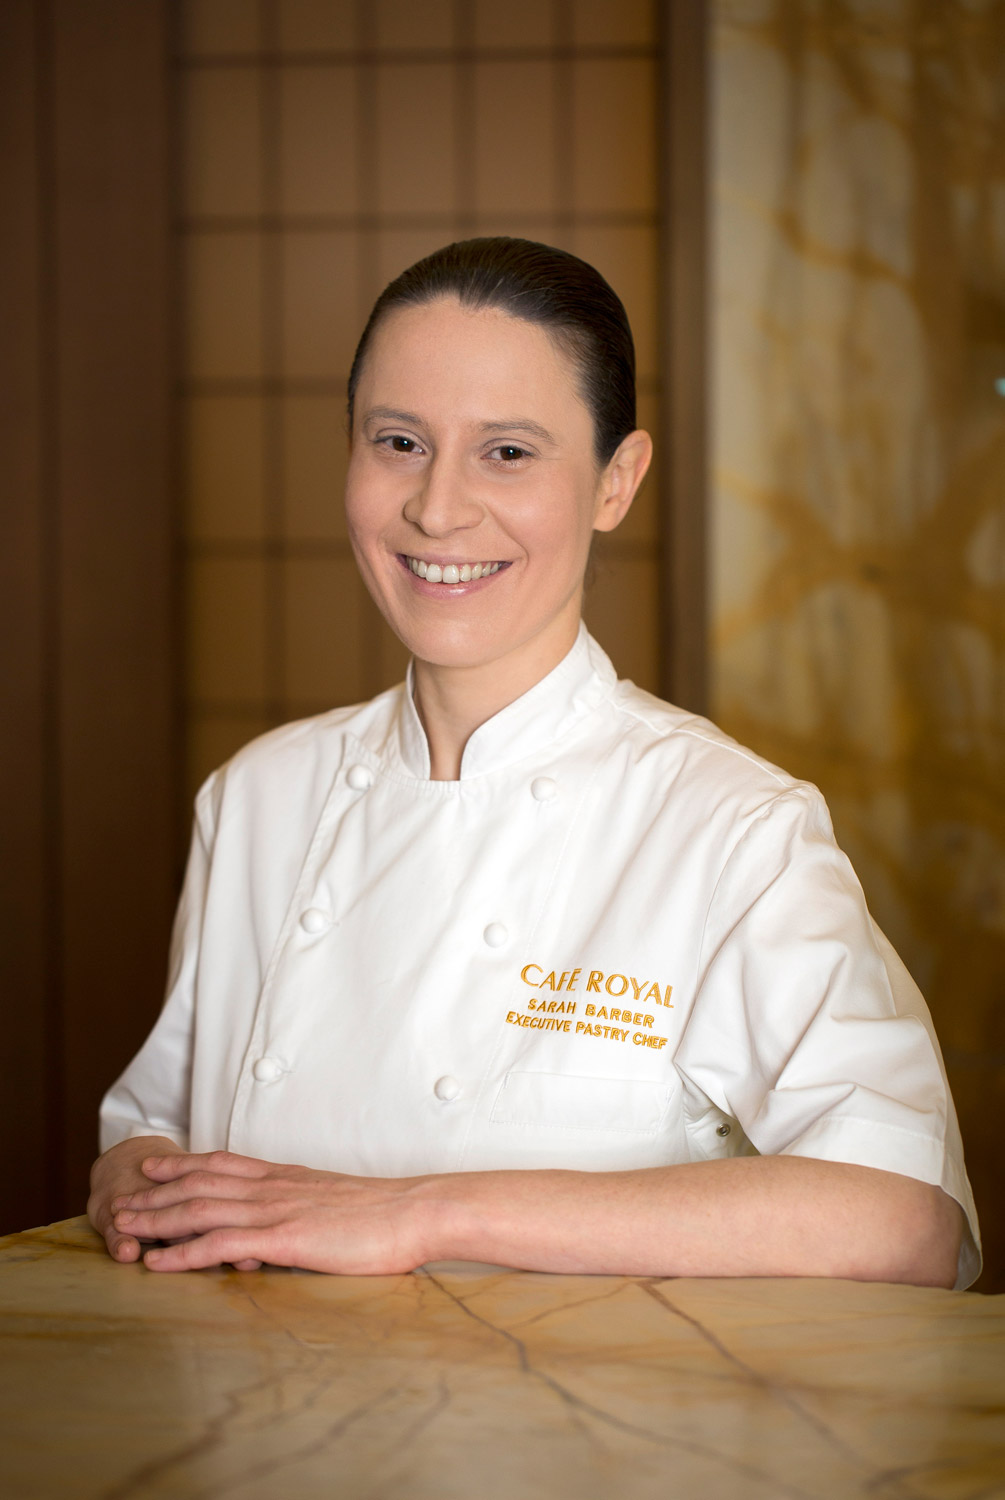 Pastry Chef Sarah Barber